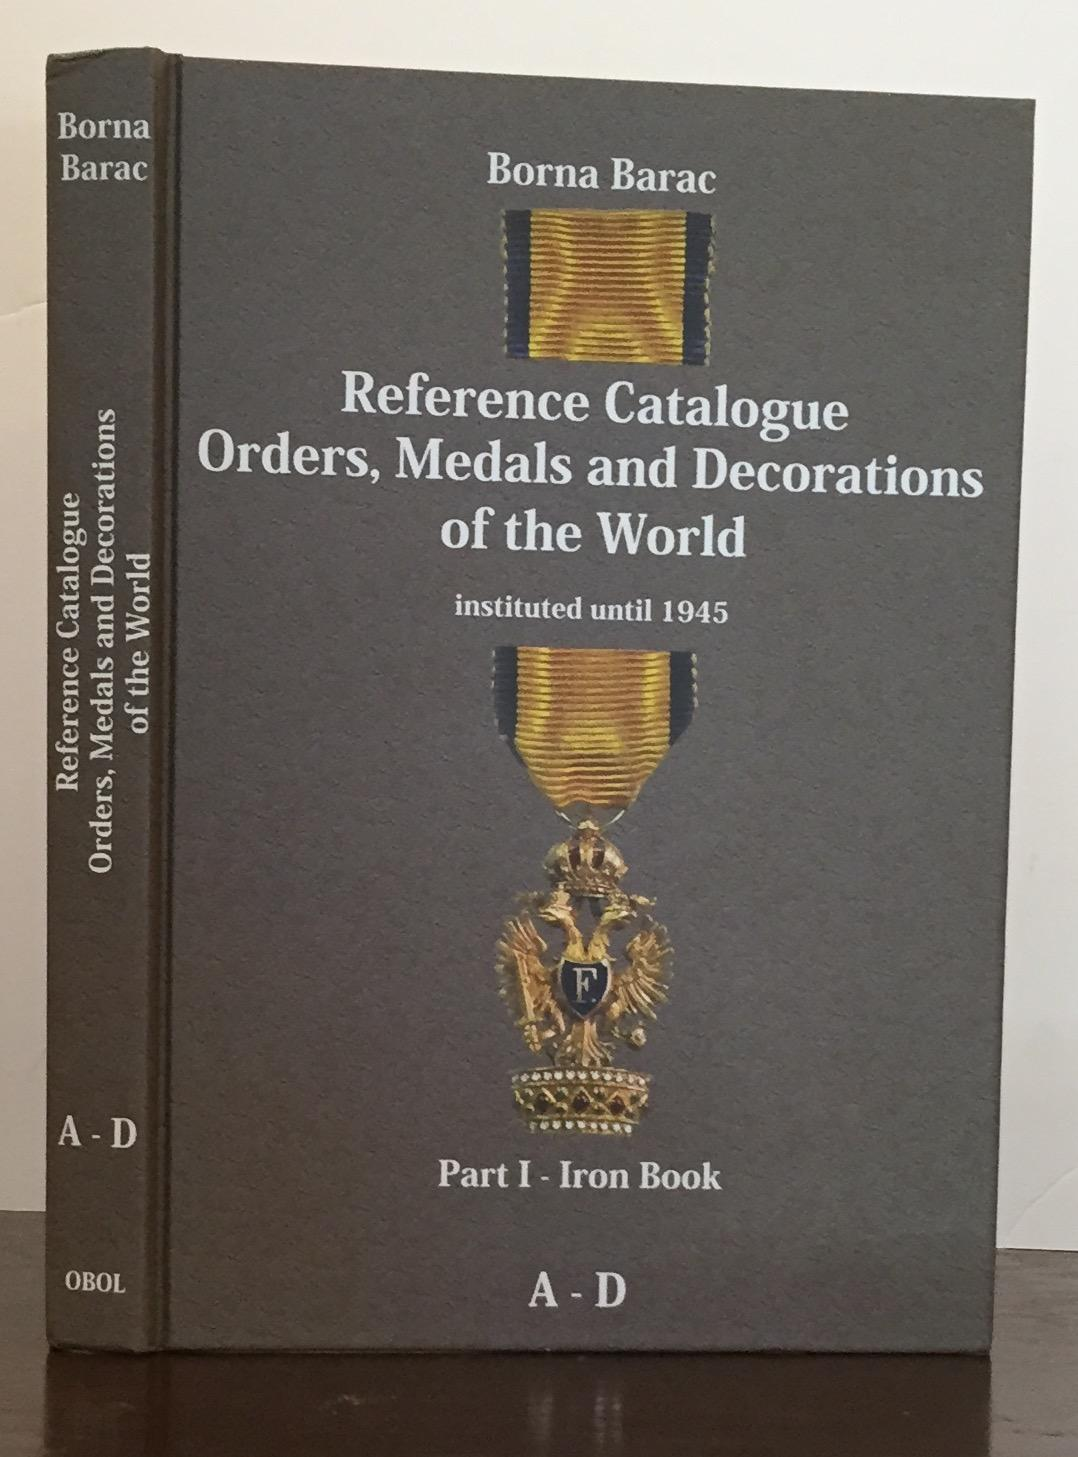 reference catalogue orders medals and decorations of the world